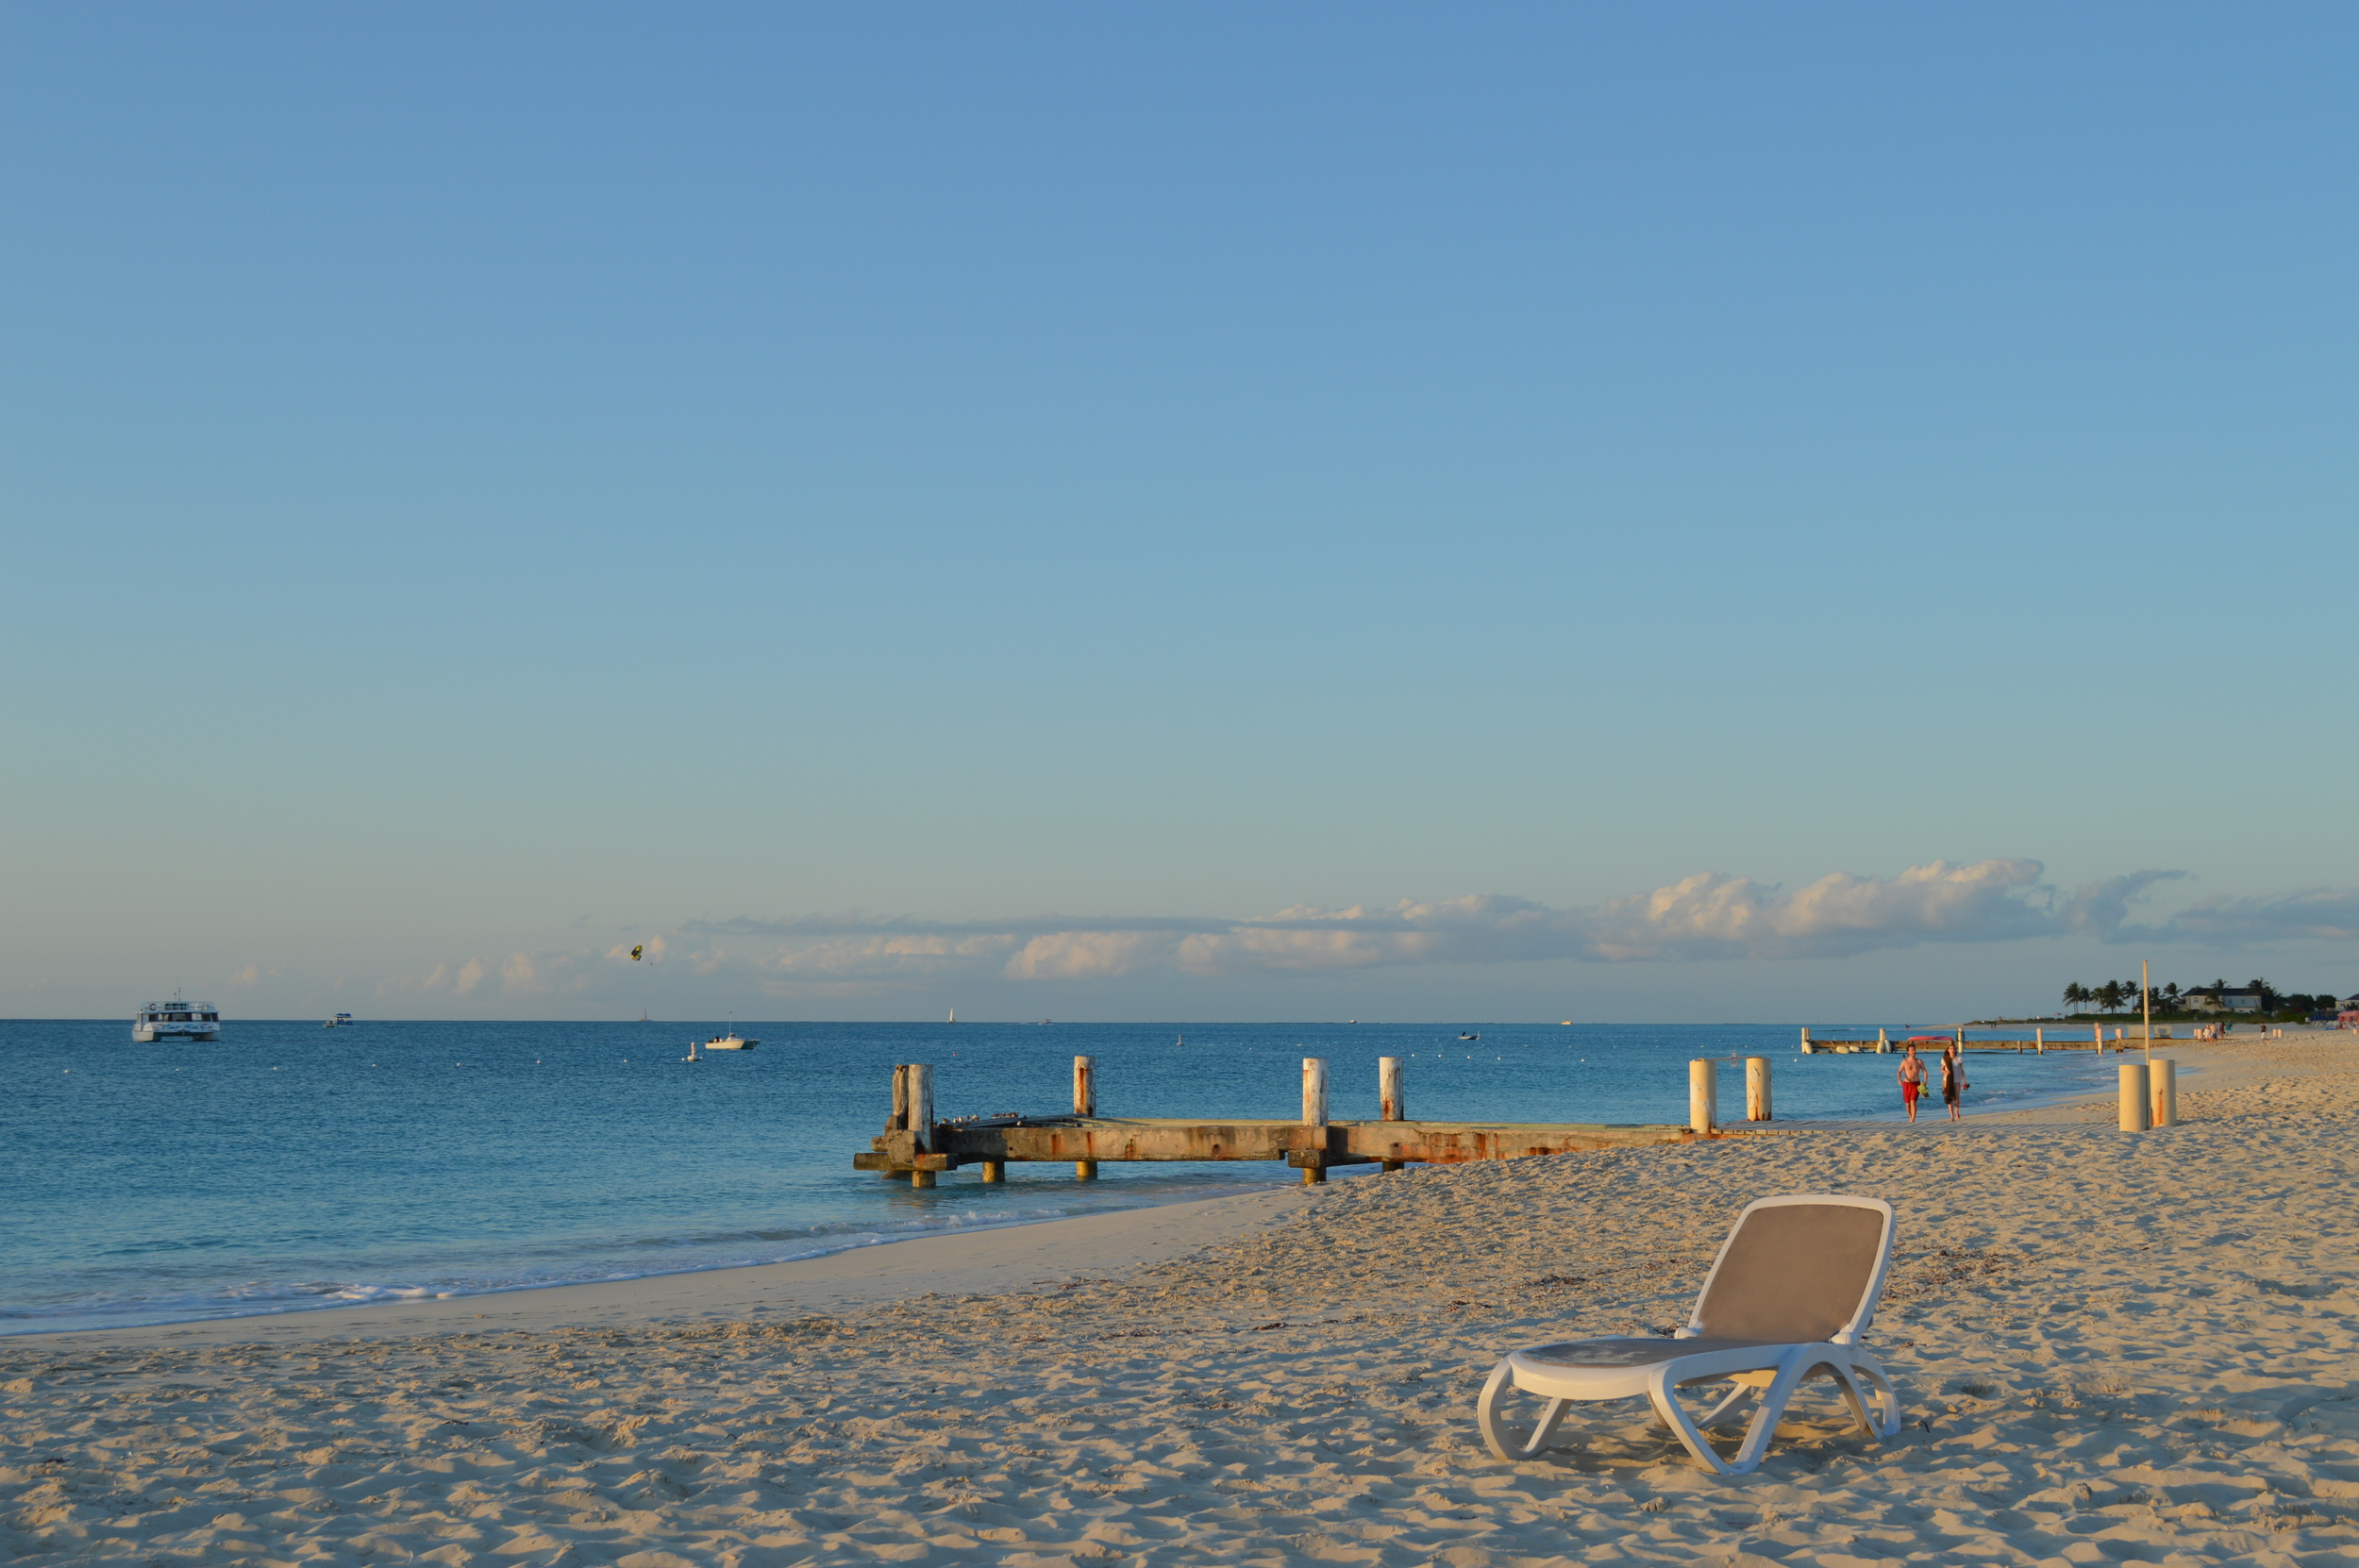 All beach photos taken at Club Med, Turkoise, located at Grace Bay, Providenciales, Turks and Caicos Islands.